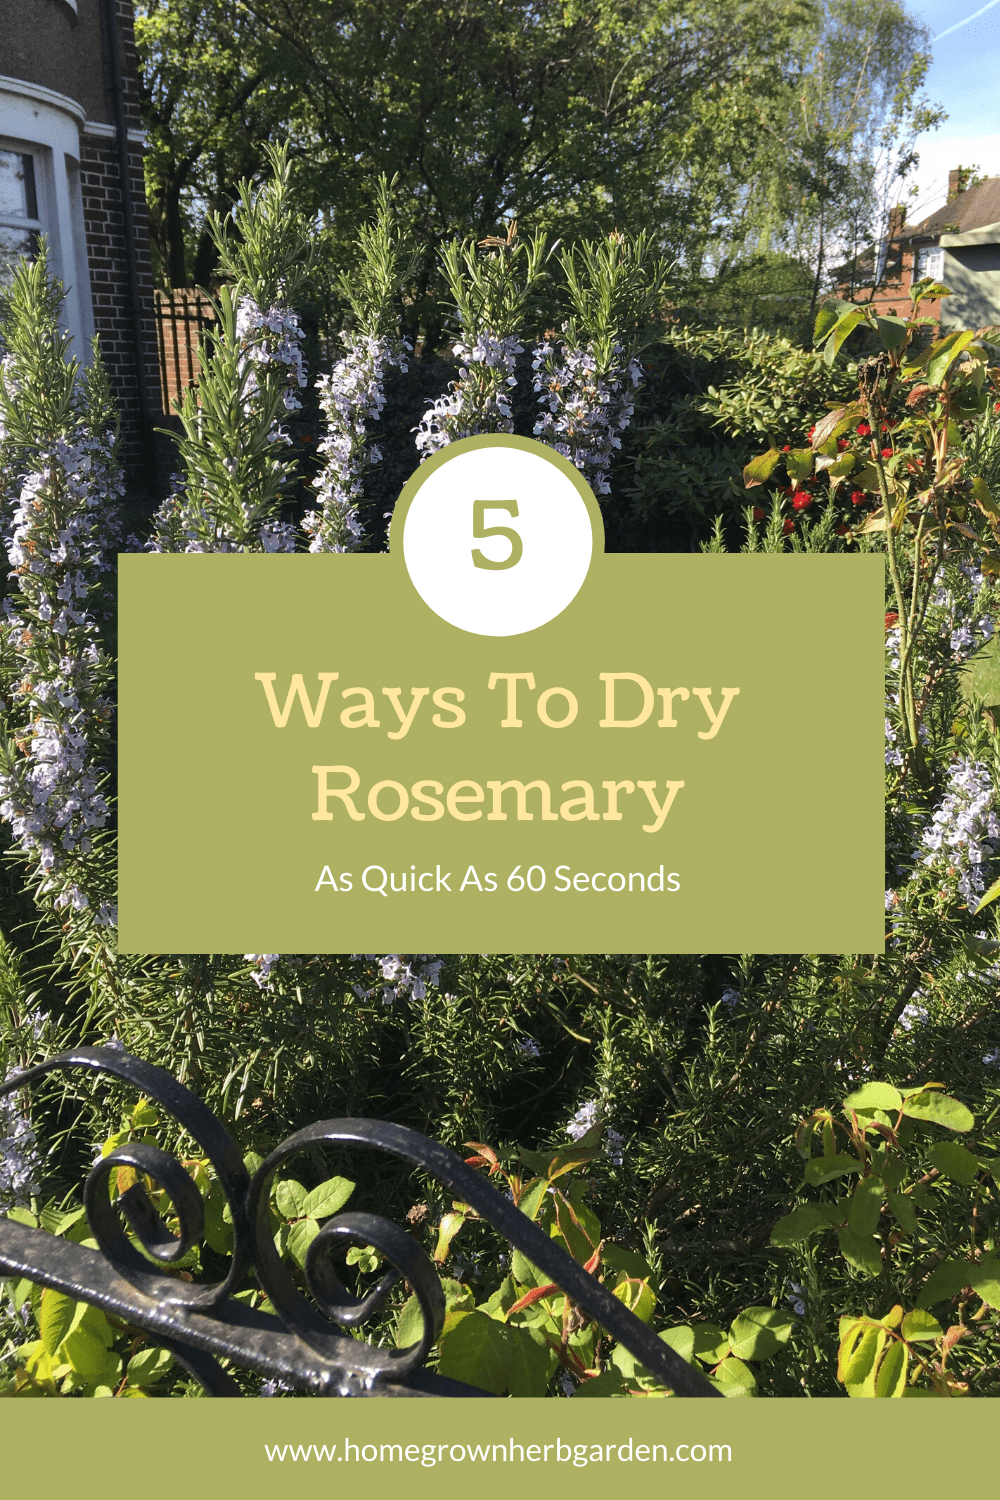 How to dry rosemary